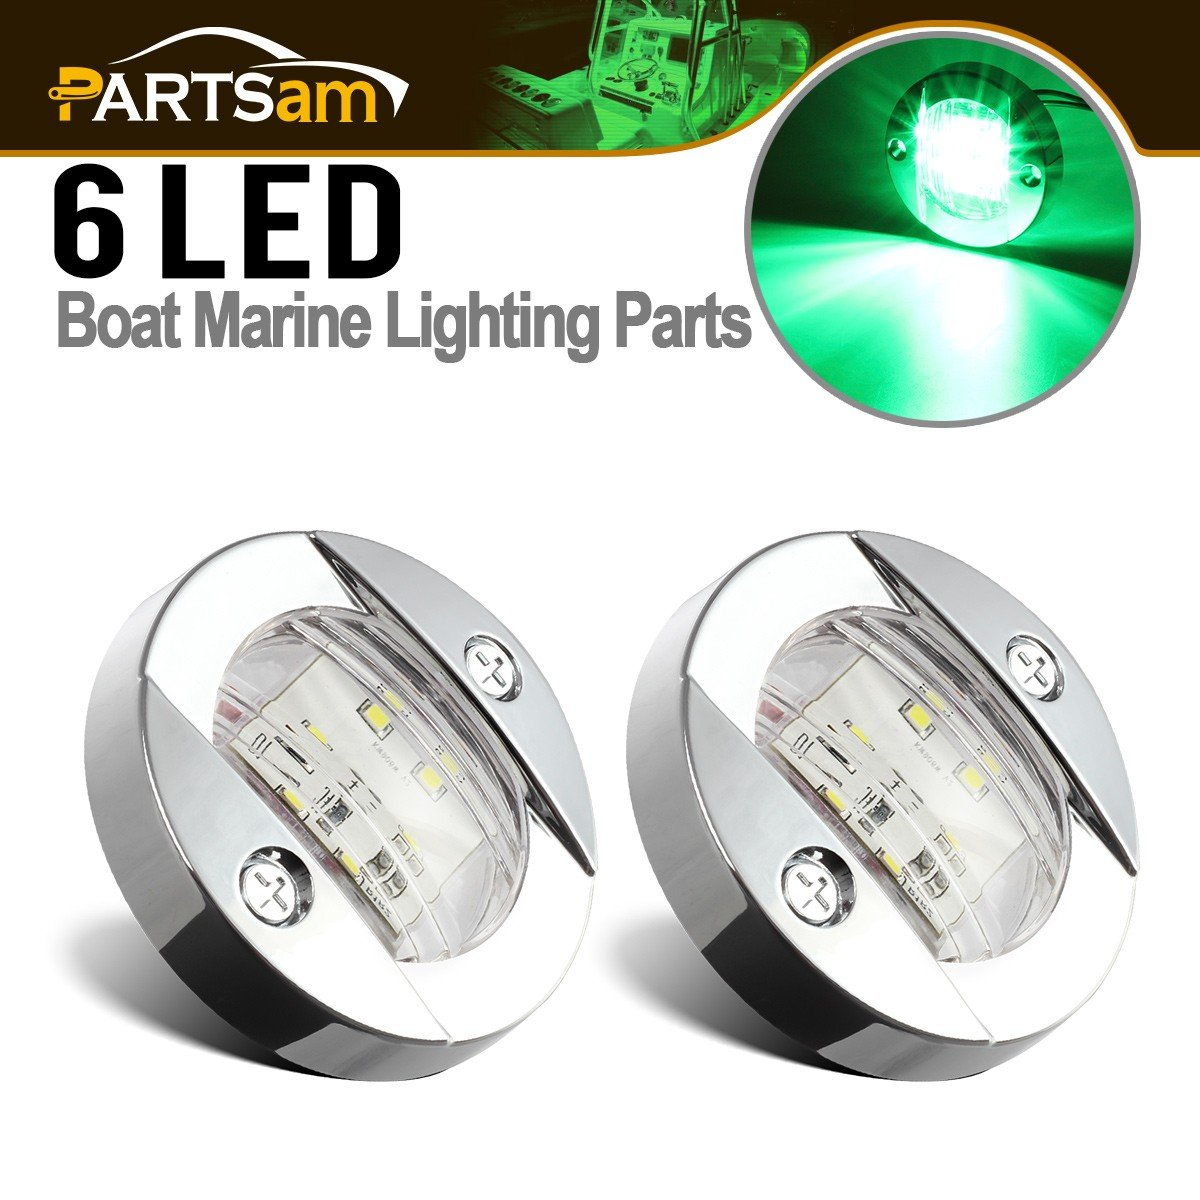 Partsam 3'' inch Round Navigation Light Boat Marine Green 6 LED Transom Mount Stern Anchor Clear Lens 12 Volts DC Chrome Bezel (Pack of 2) by Partsam